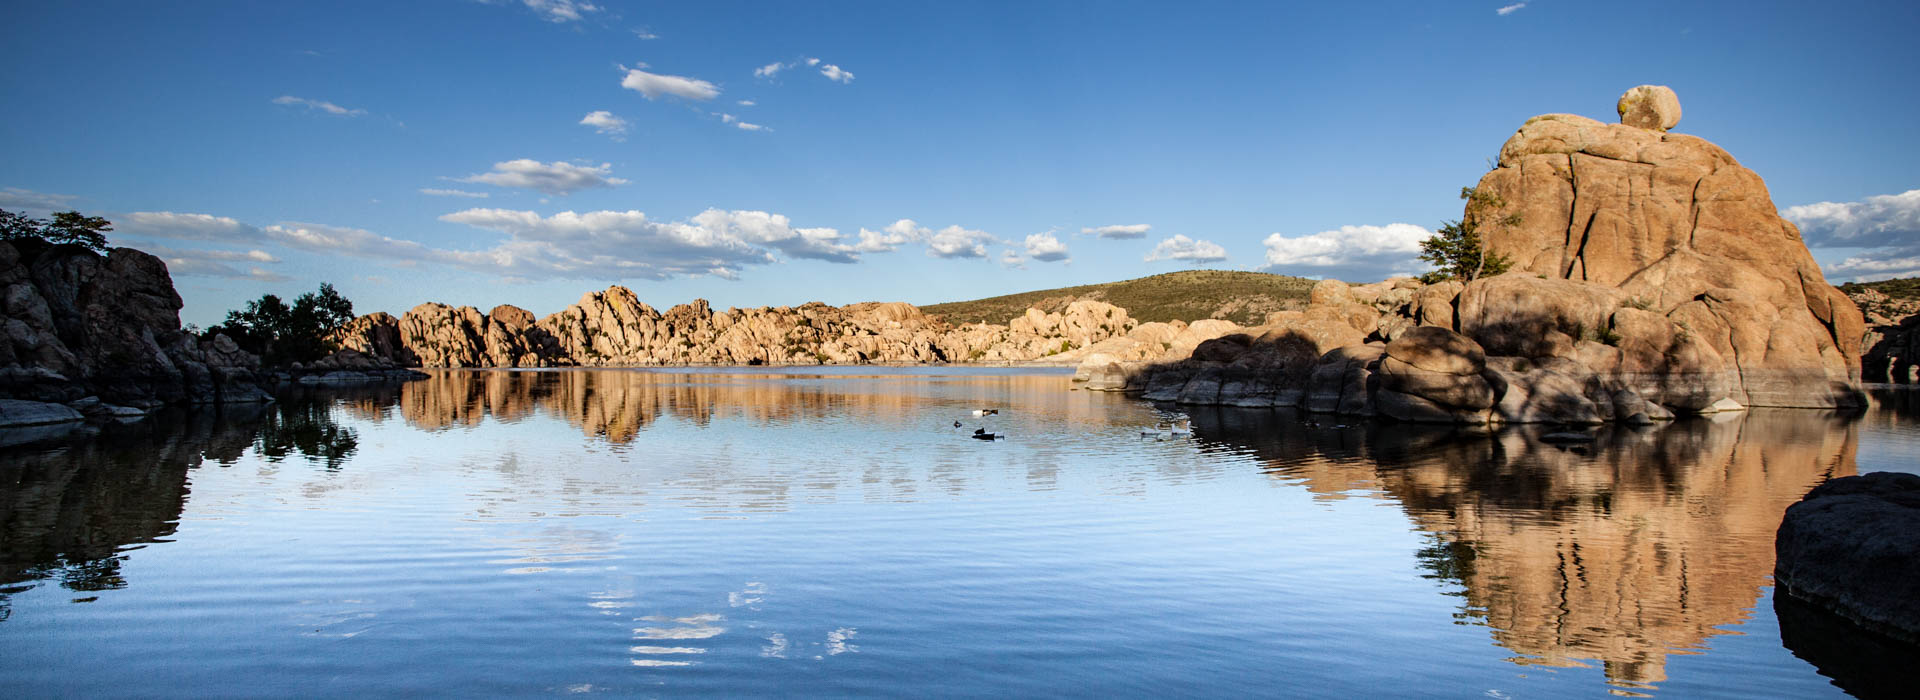 Watson Lake High Sun Prescott Arizona Photographer Richard Charpentier